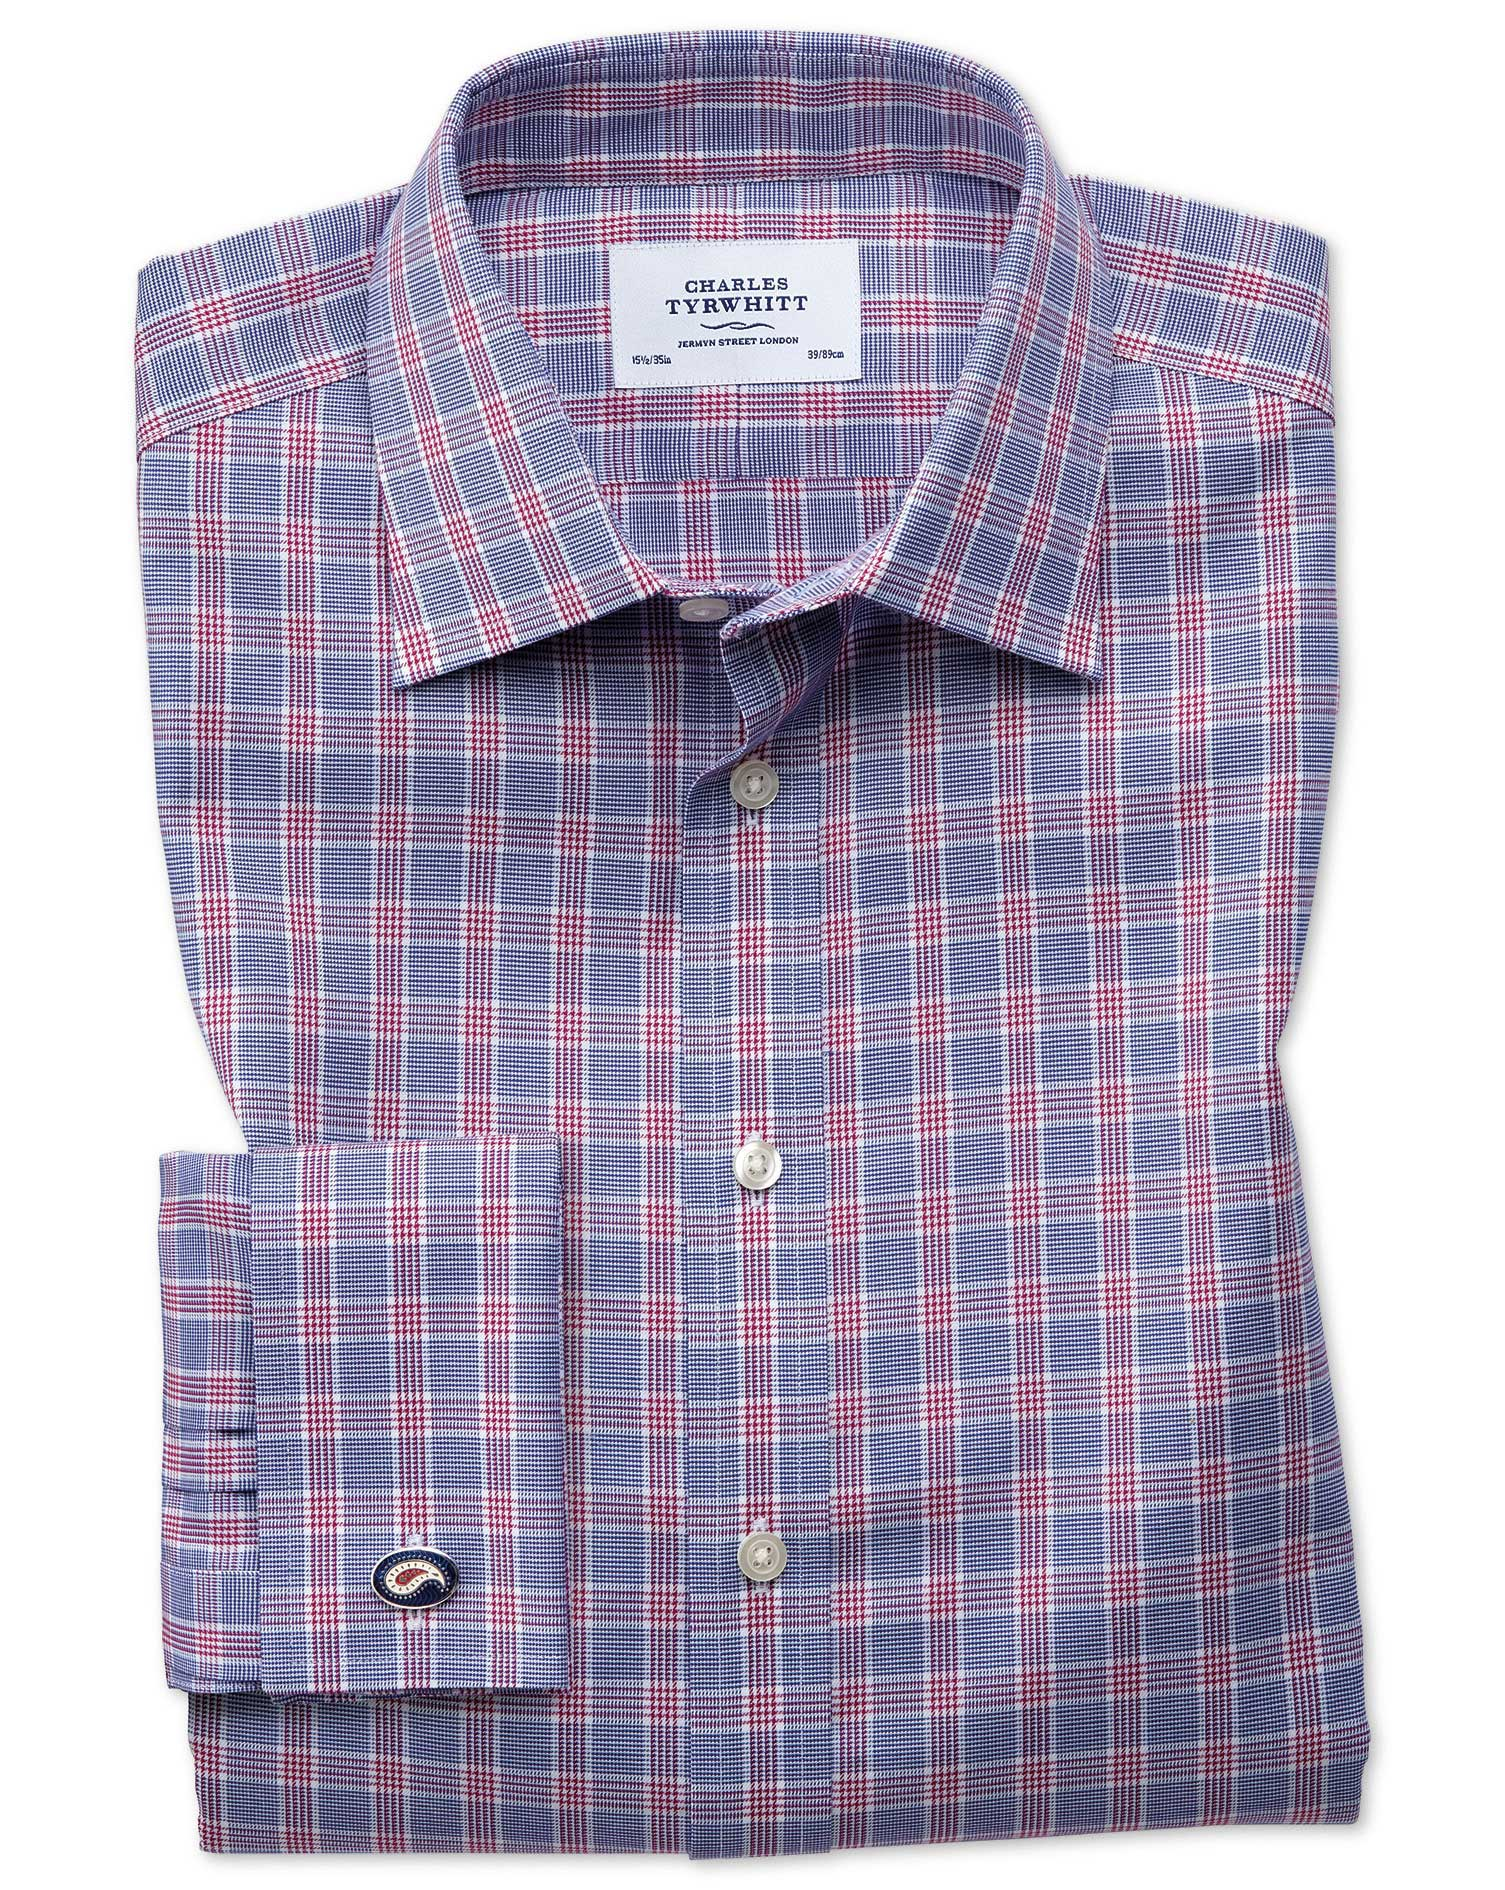 Classic Fit Non-Iron Prince Of Wales Berry and Navy Blue Cotton Formal Shirt Double Cuff Size 16.5/3